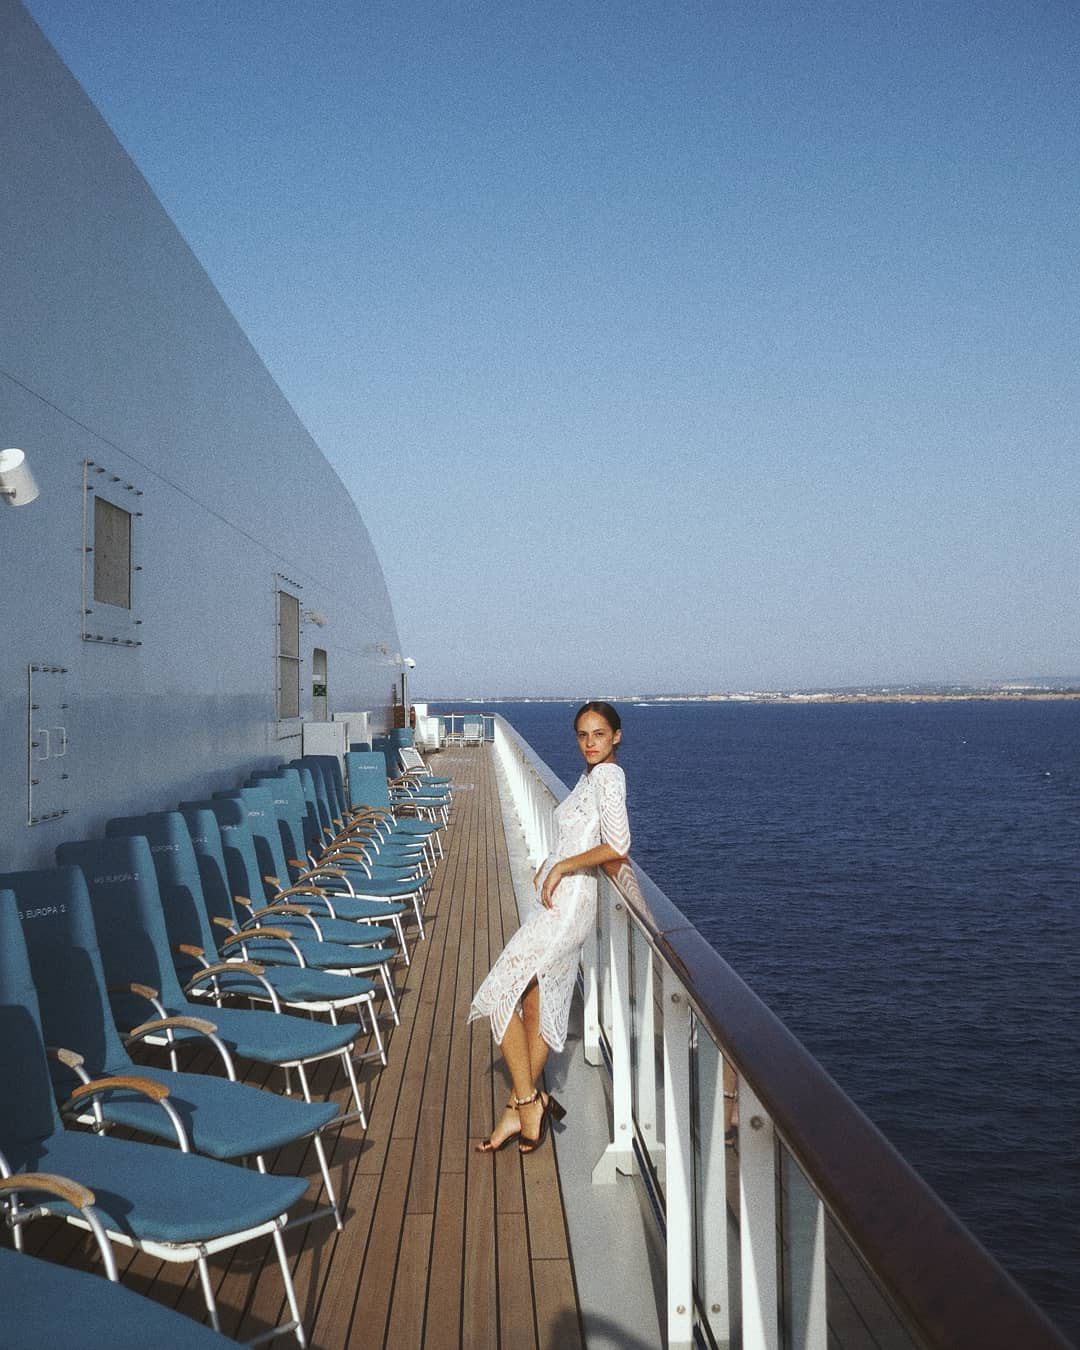 Sound cruise experience – Schiller on board the MS EUROPA 2